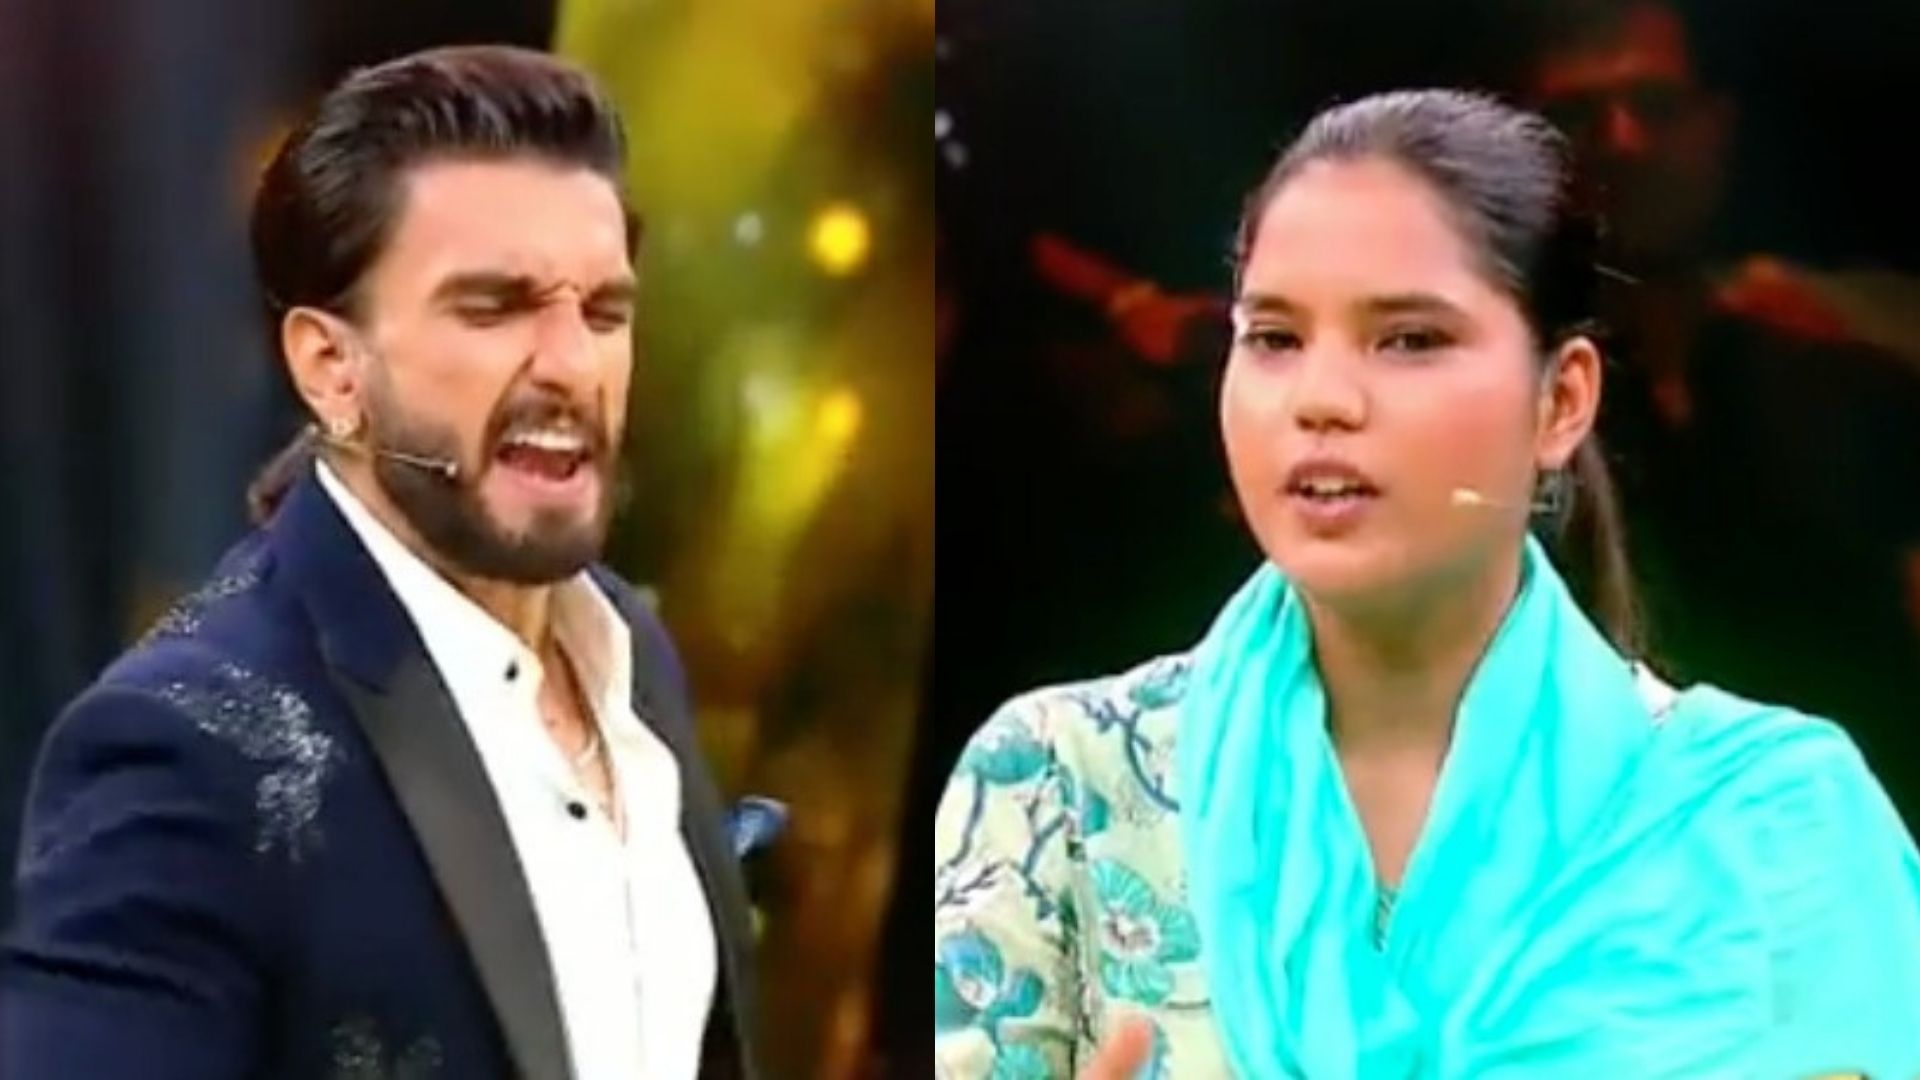 The Big Picture: Ranveer Singh Gifts A Pair Of Brand New Shoes To The First Contestant, A Lady Constable